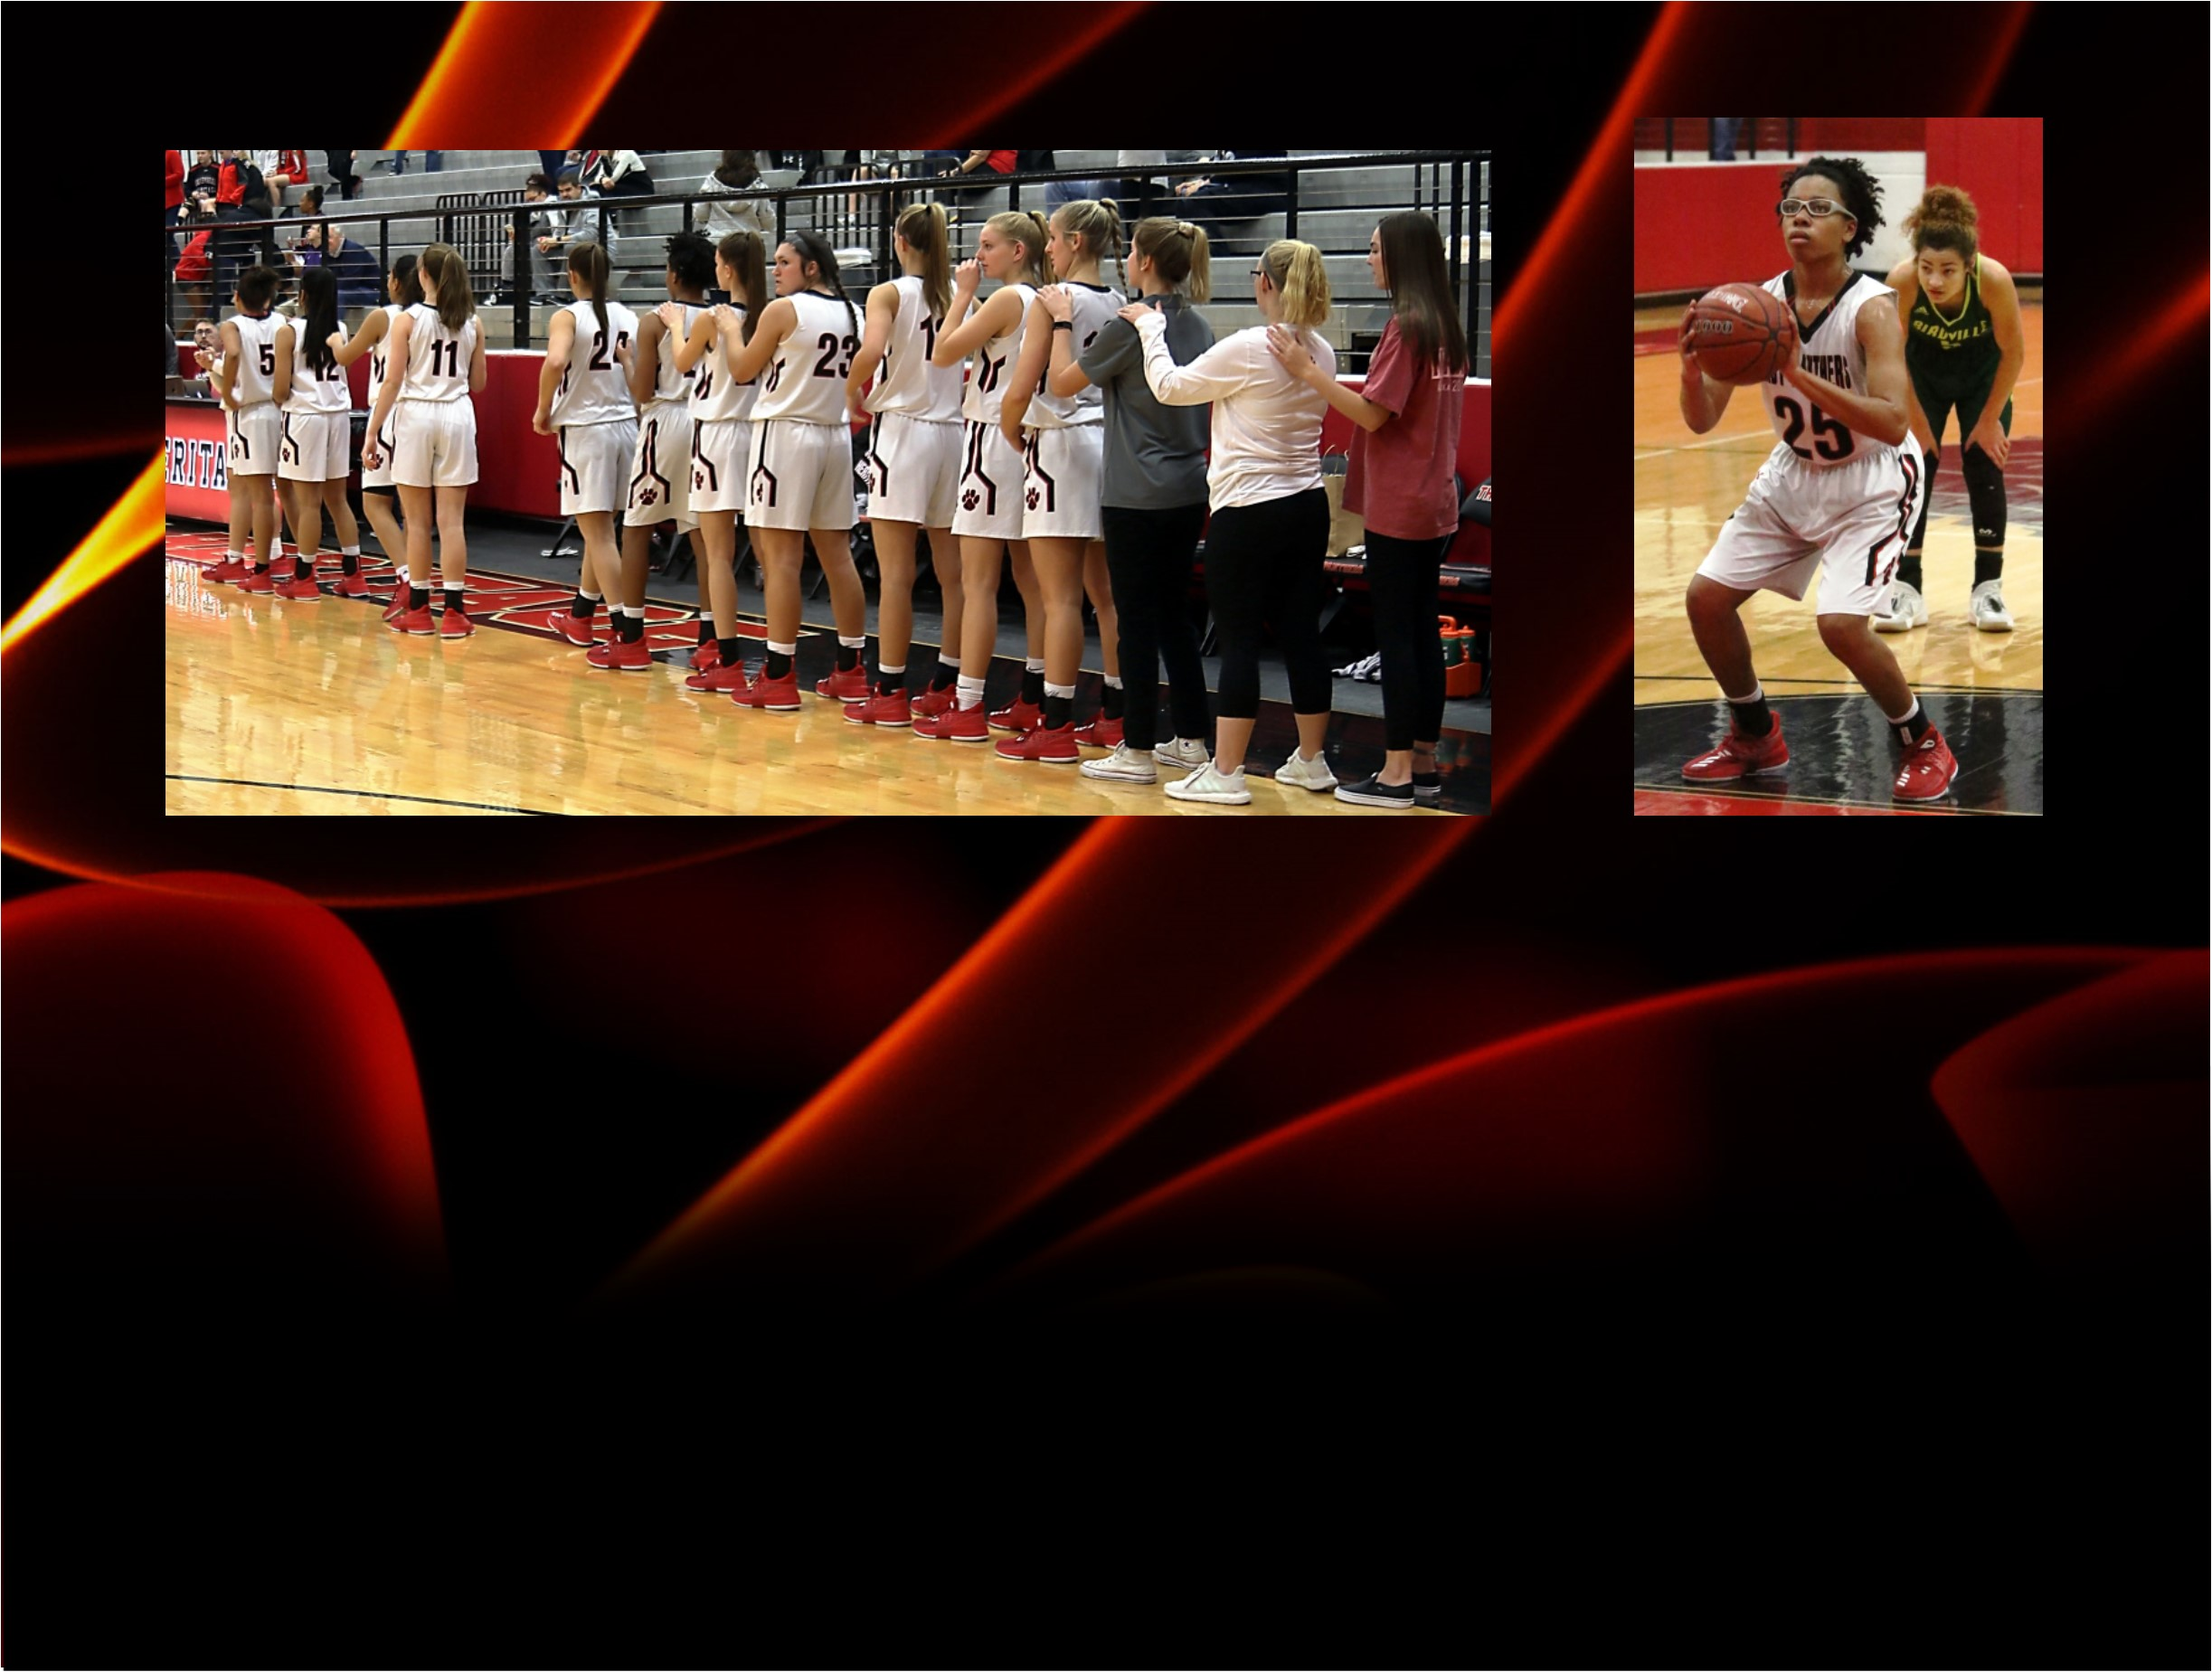 Colleyville Lady Panthers Defeat Birdville